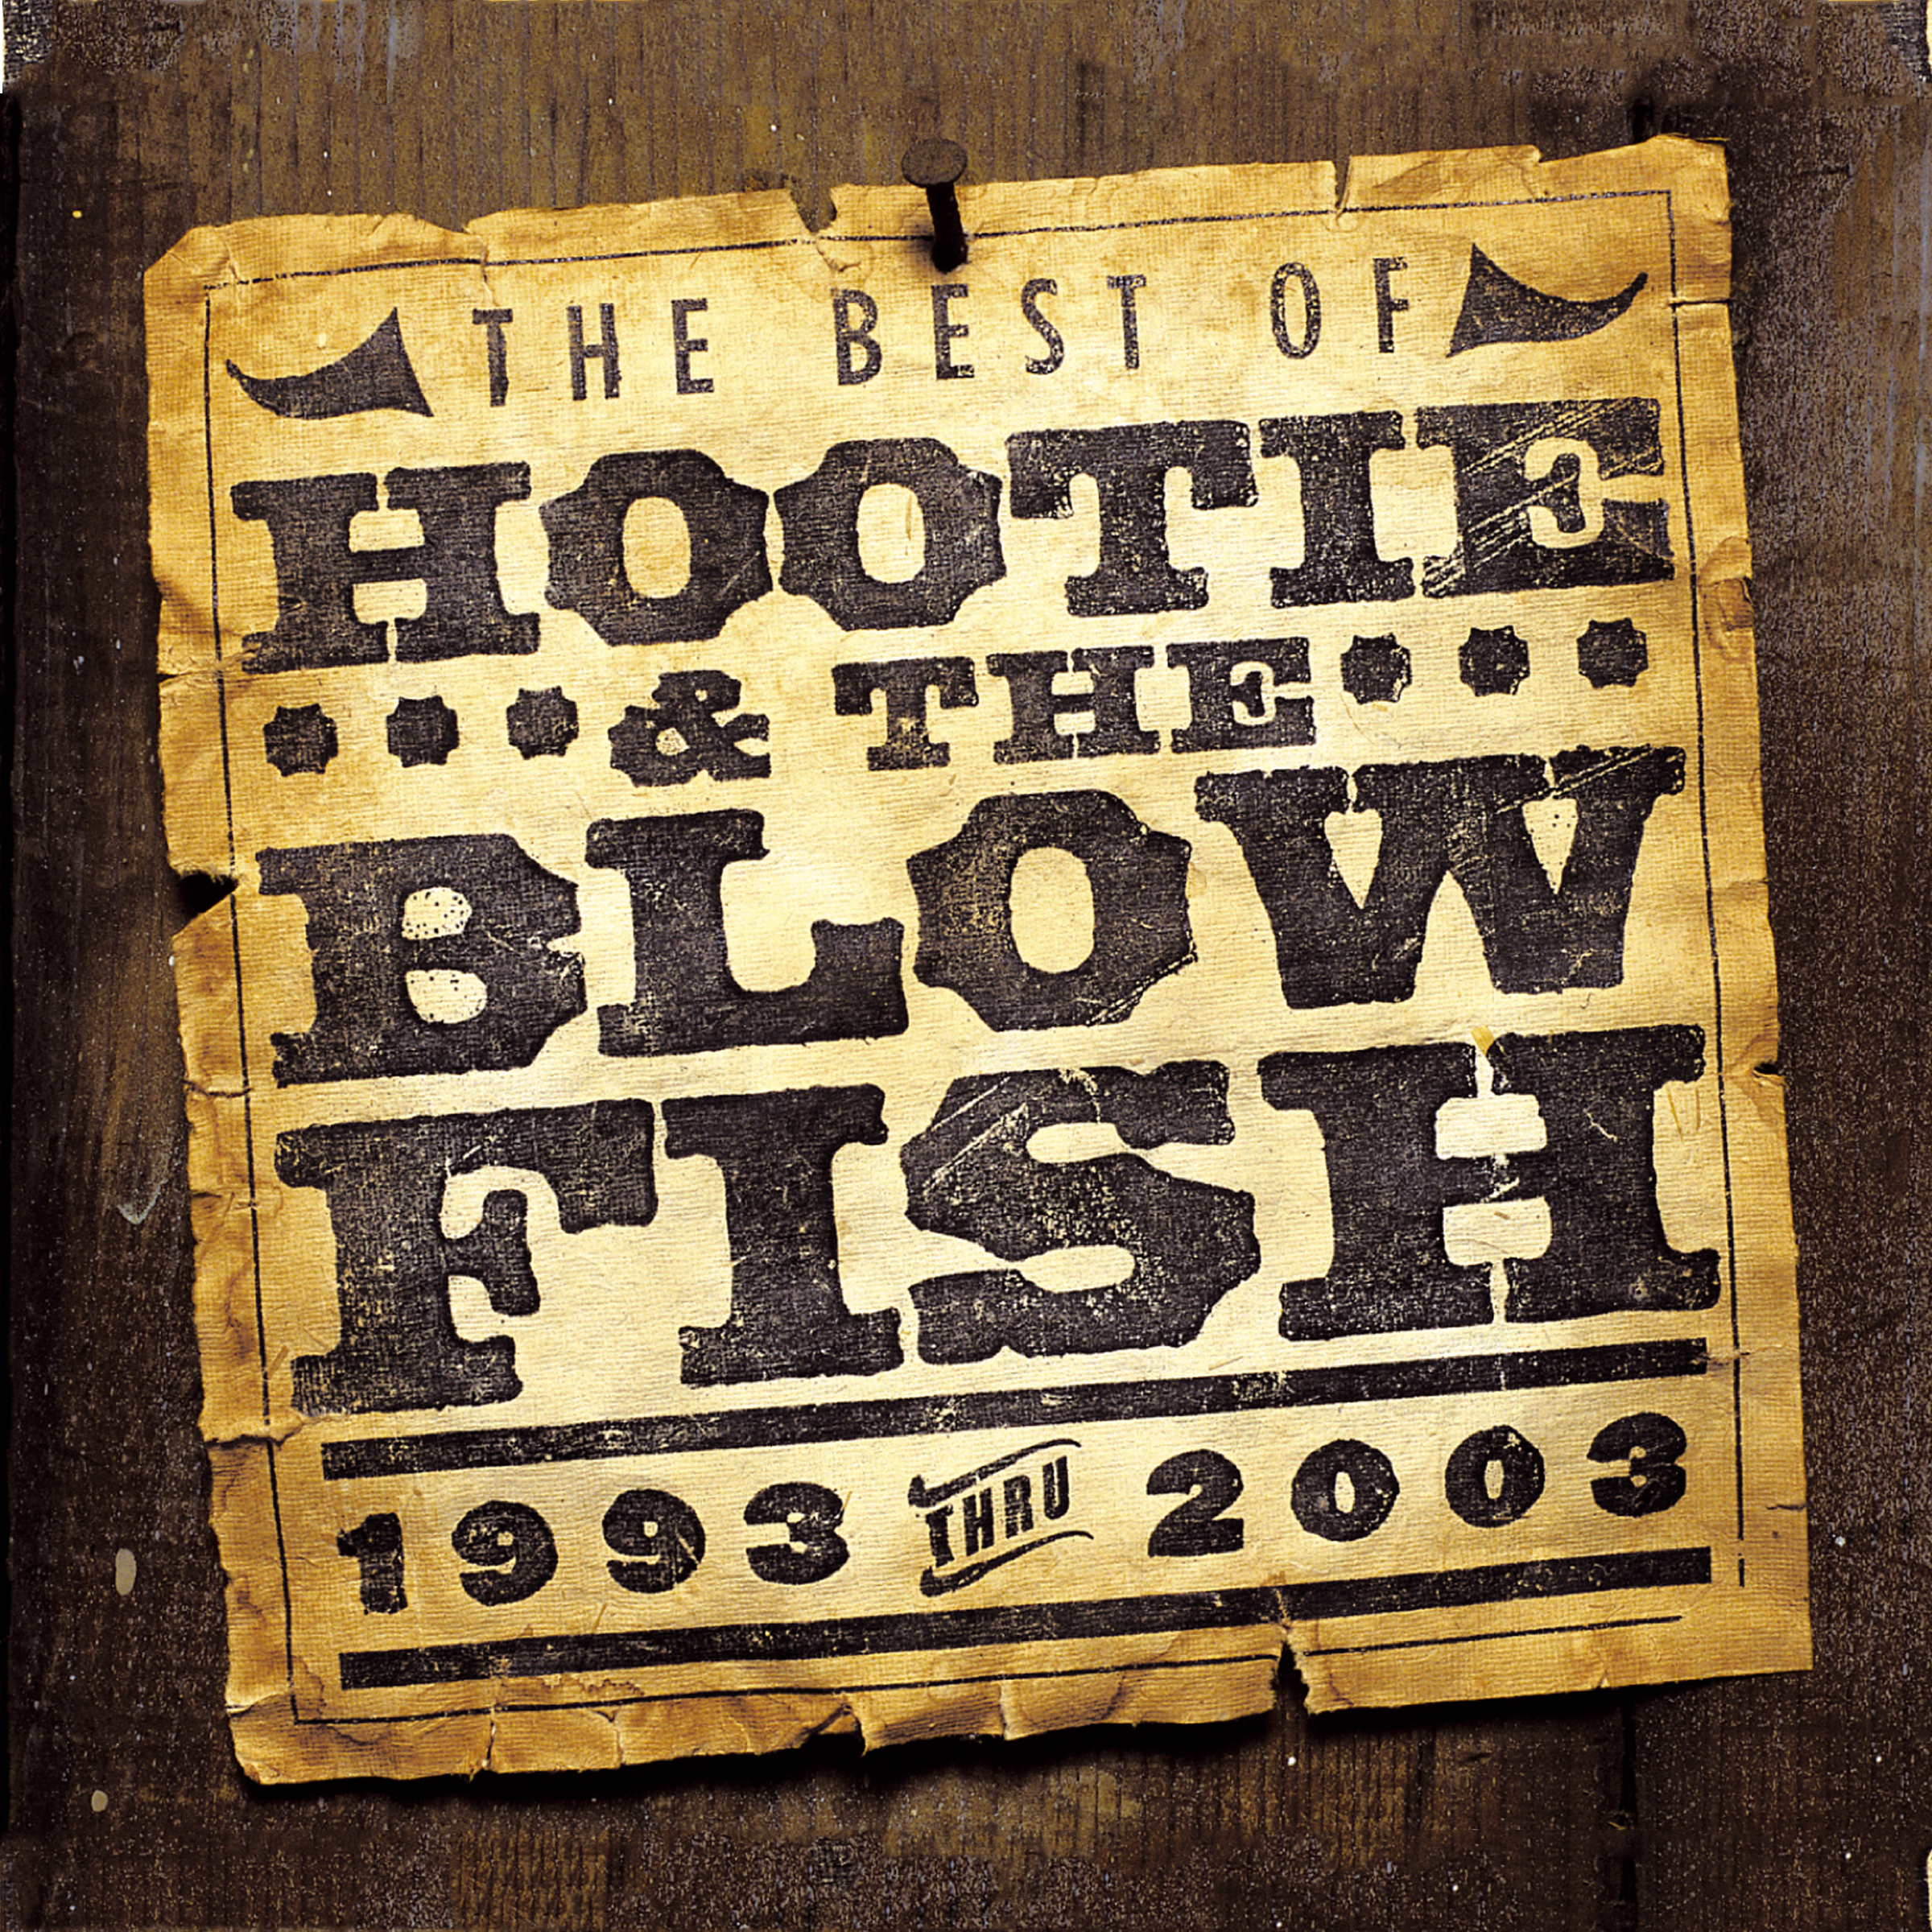 Art for Not Even the Trees by Hootie & the Blowfish